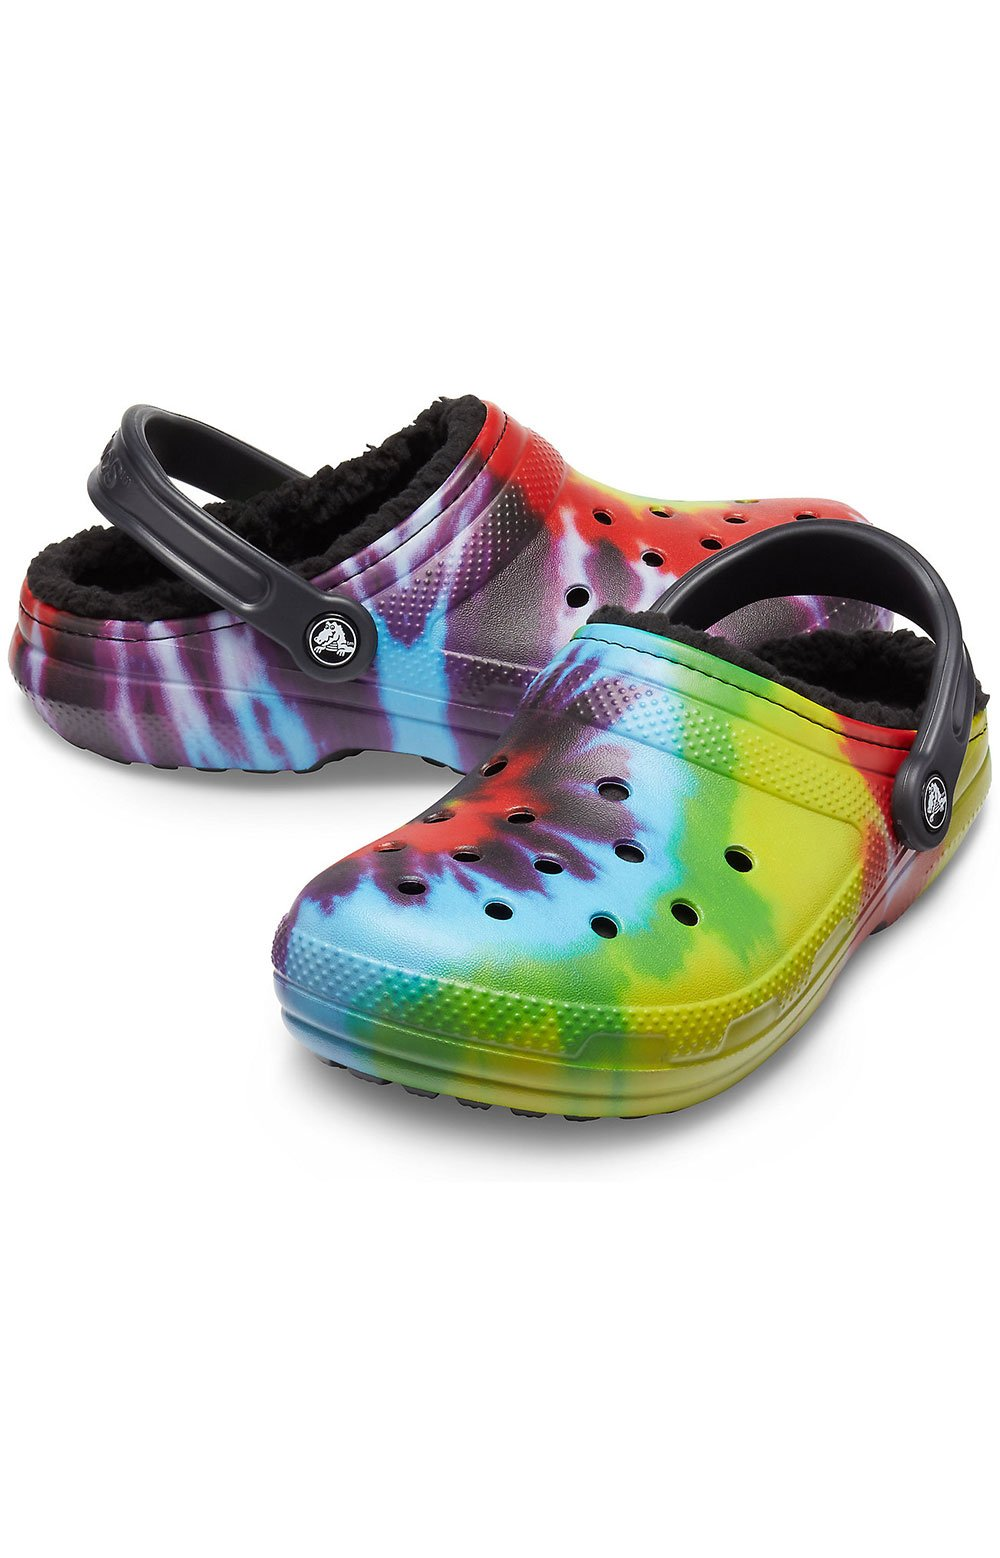 Classic Lined Tie-Dye Clogs - Multi/Black 3